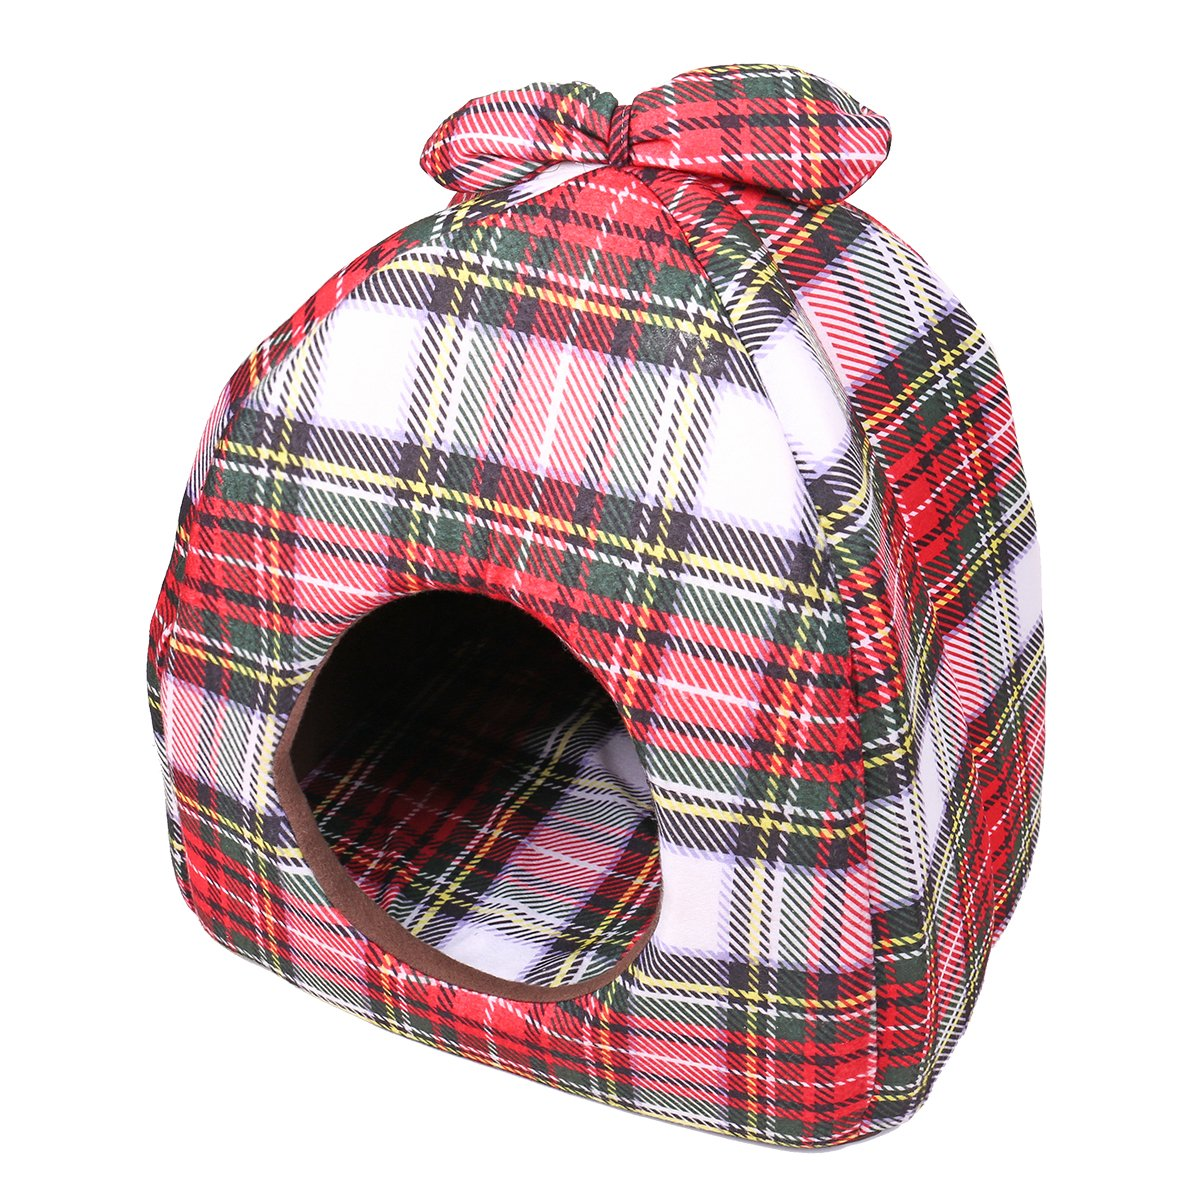 Speedy Pet Dog Cat Tent Beds, Plaid Pattern Soft Warm Removable Mat Cushion Puppy Cats Bed Cave for Small Medium Pets M